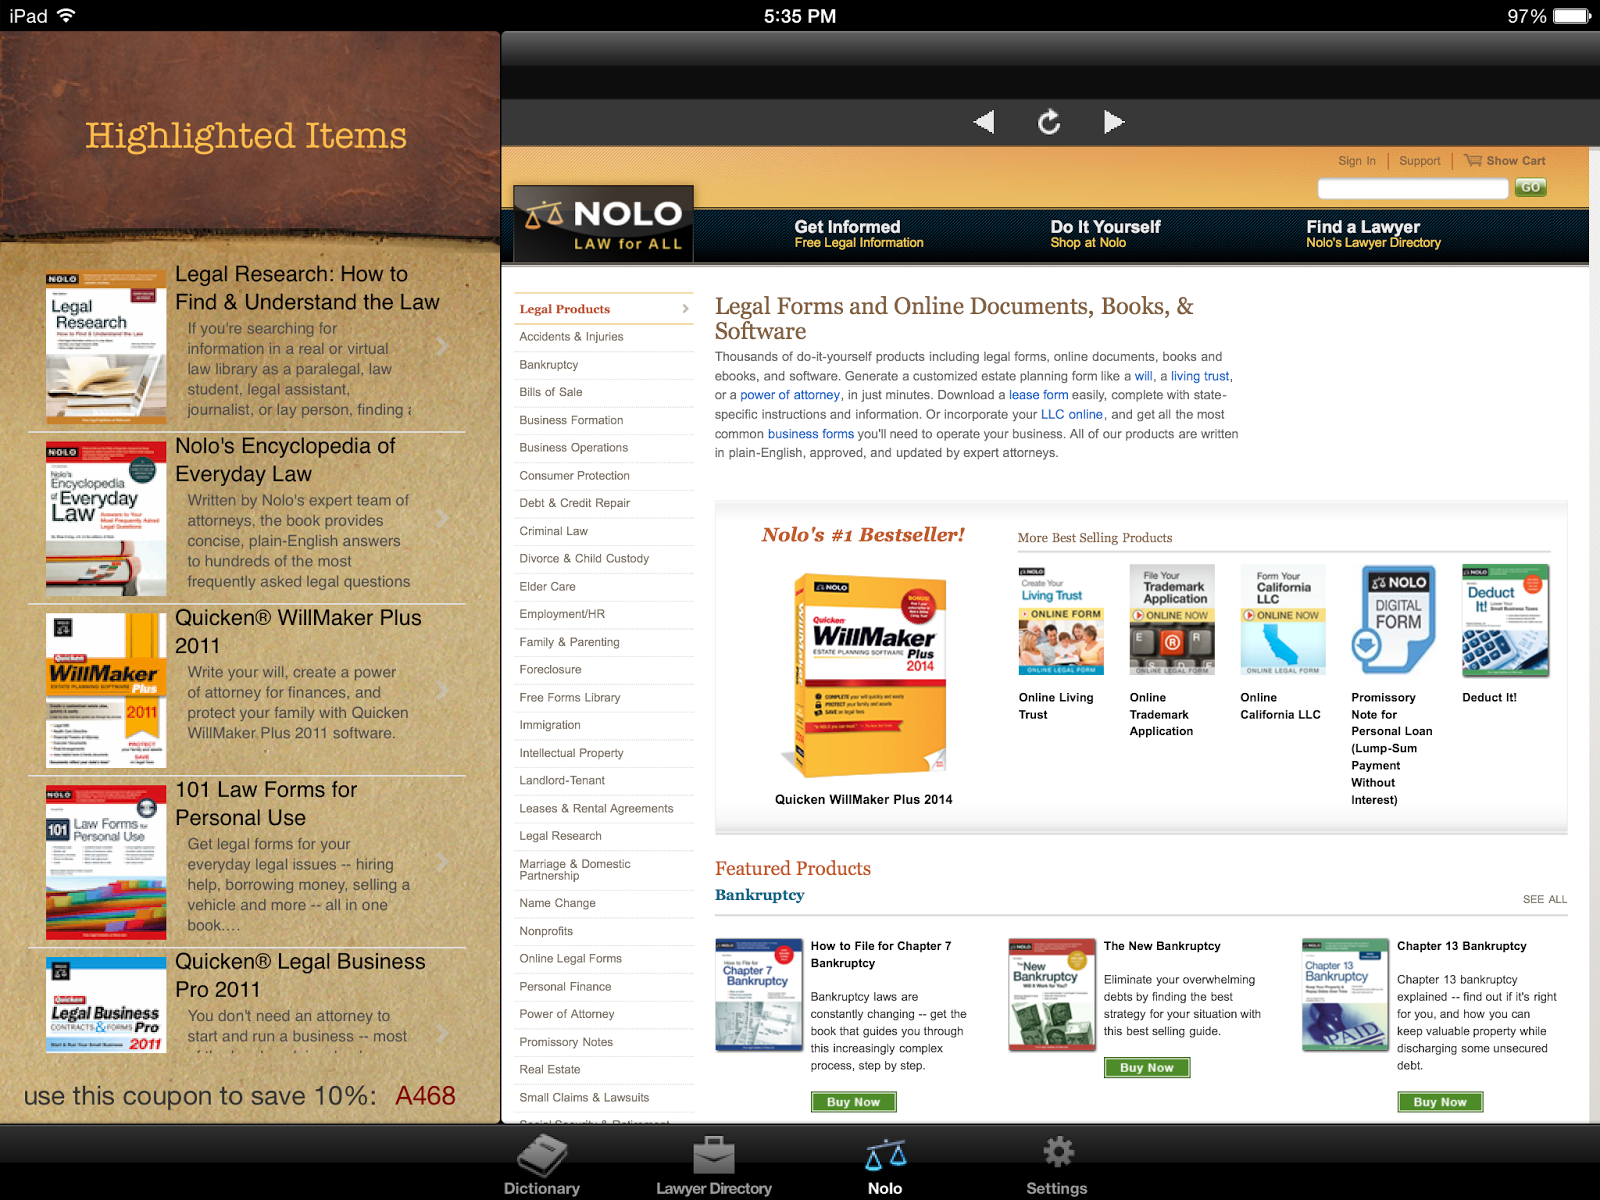 SpotOn Legal Research Mobile Apps For Legal Research Nolos - Law forms for personal use